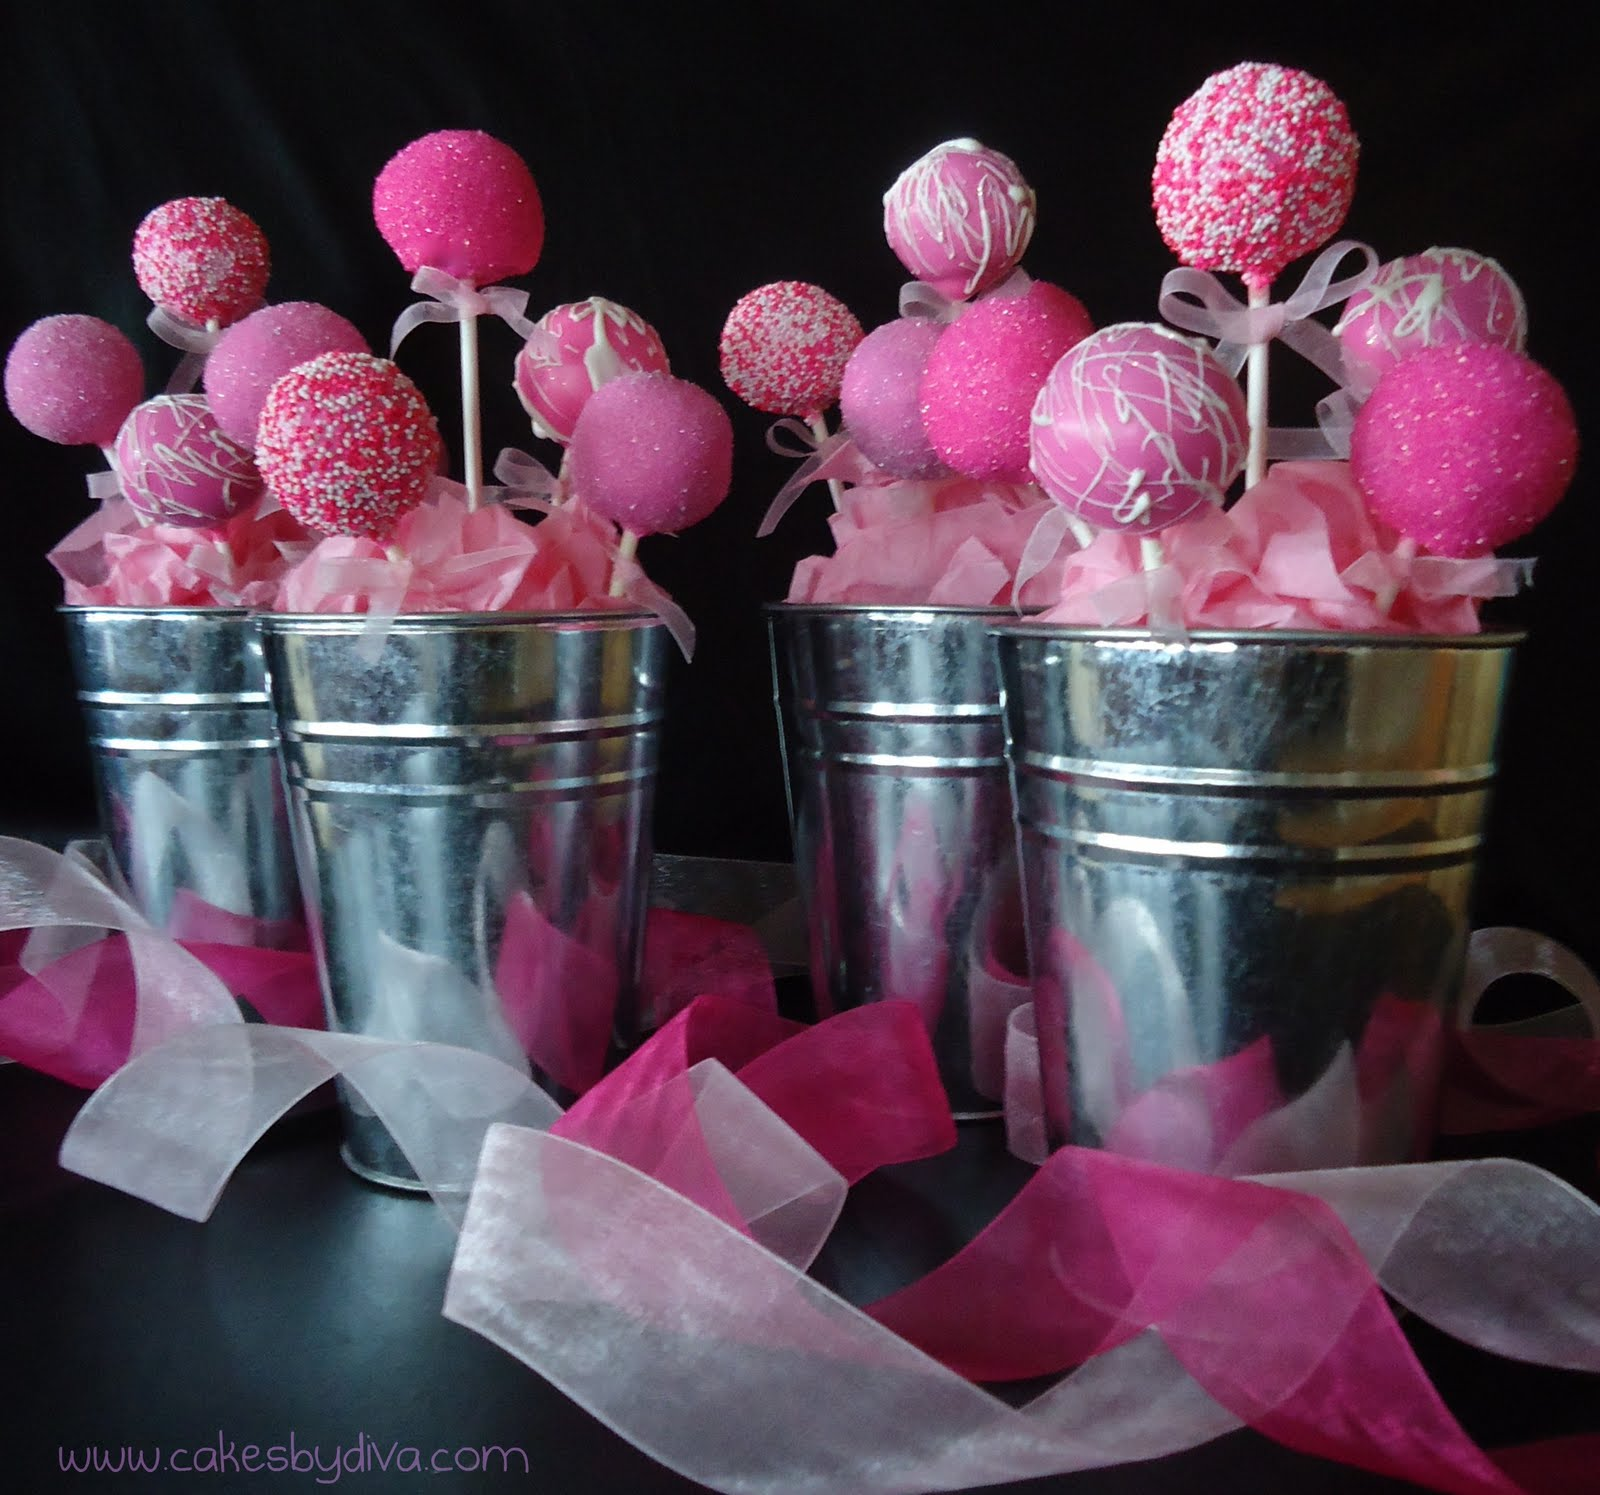 Cakes By Diva: Cake Pops!!!